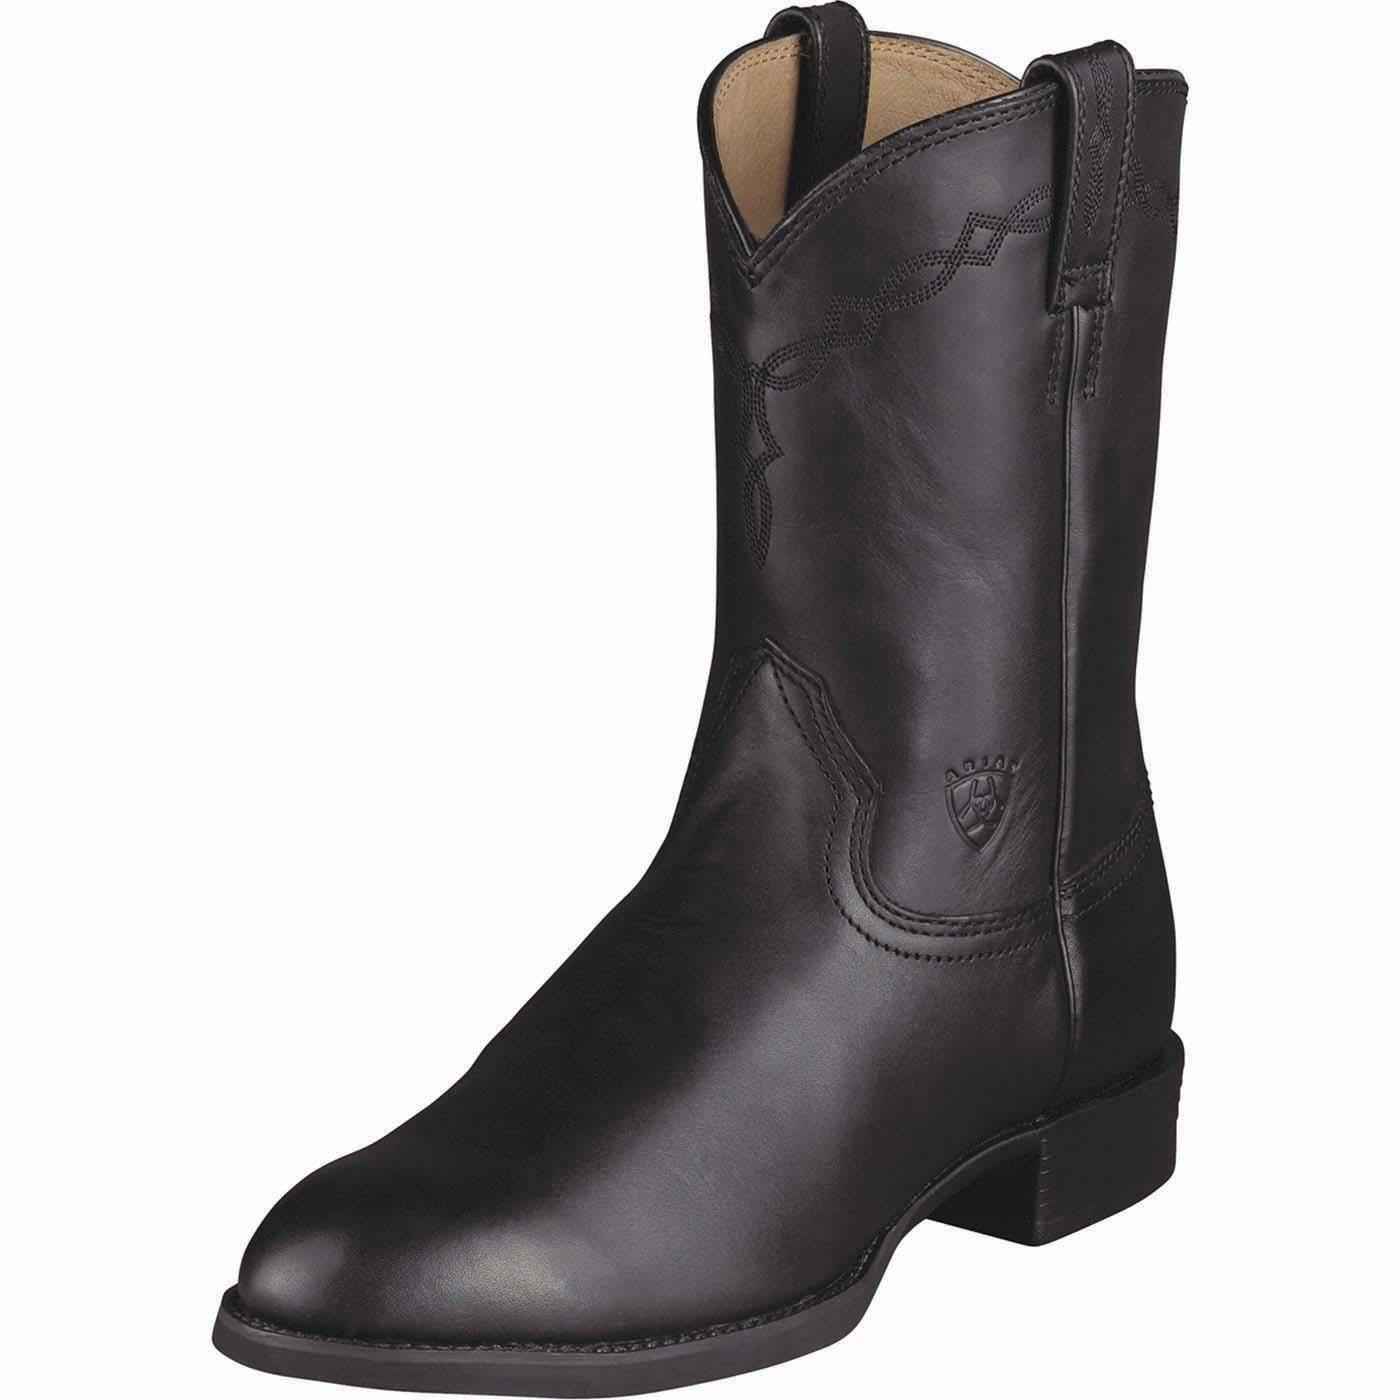 Cowgirl Boots & Western Booties Your search for the perfect cowgirl boot is over! At xuavawardtan.gq we have over 1,, pairs and 2, styles of cowgirl boots and western booties for women.